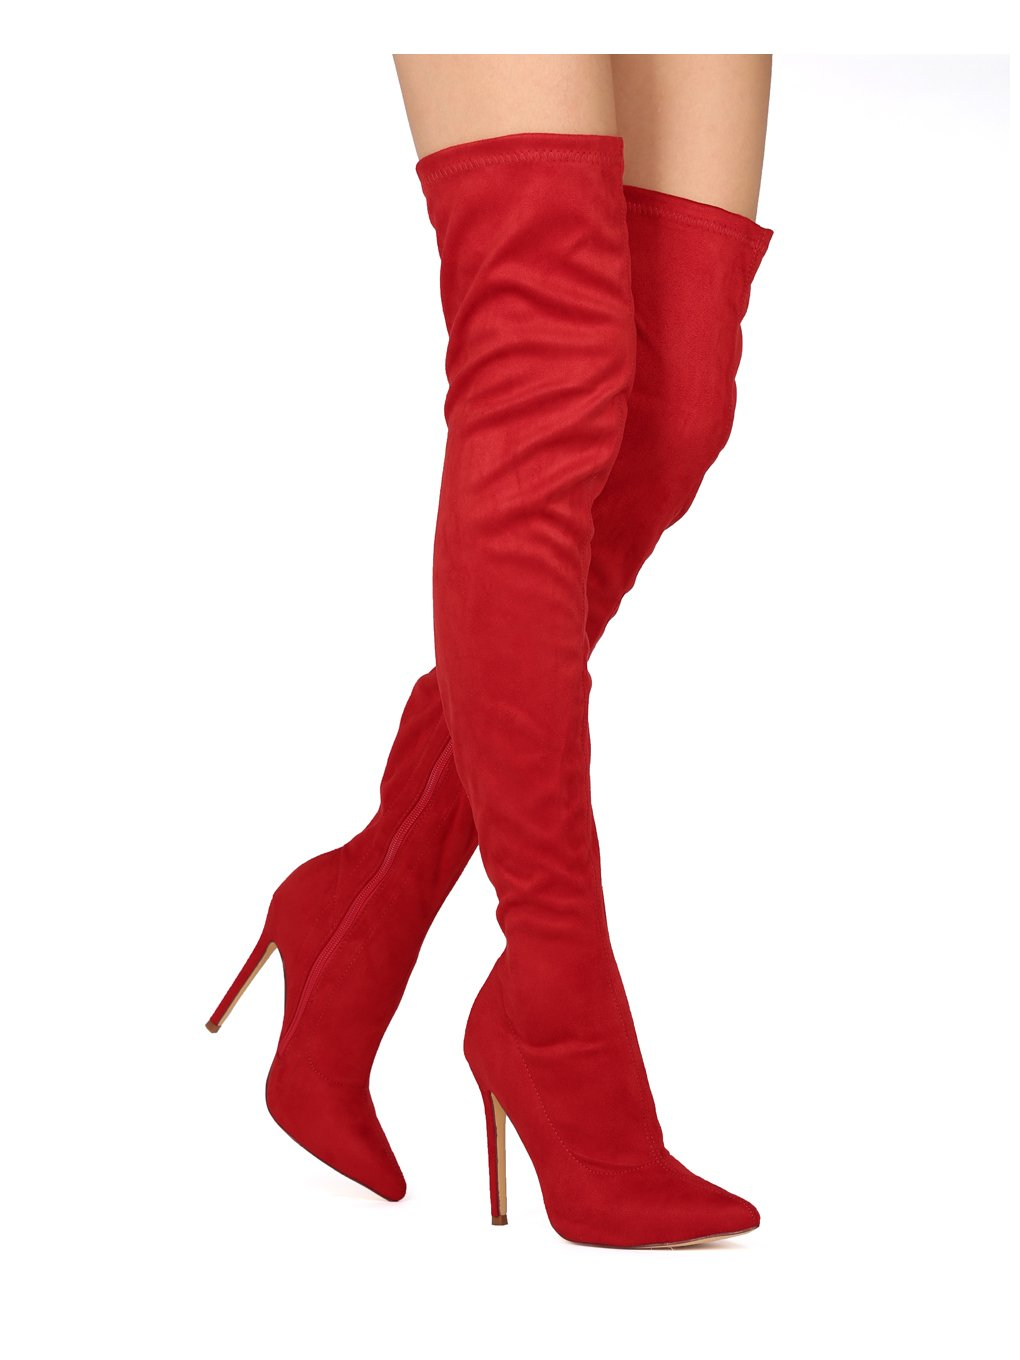 Liliana Gisele-7 Red faux Suede Pointy Toe Thigh High Single Sole Stiletto Boot (8) by Liliana (Image #1)